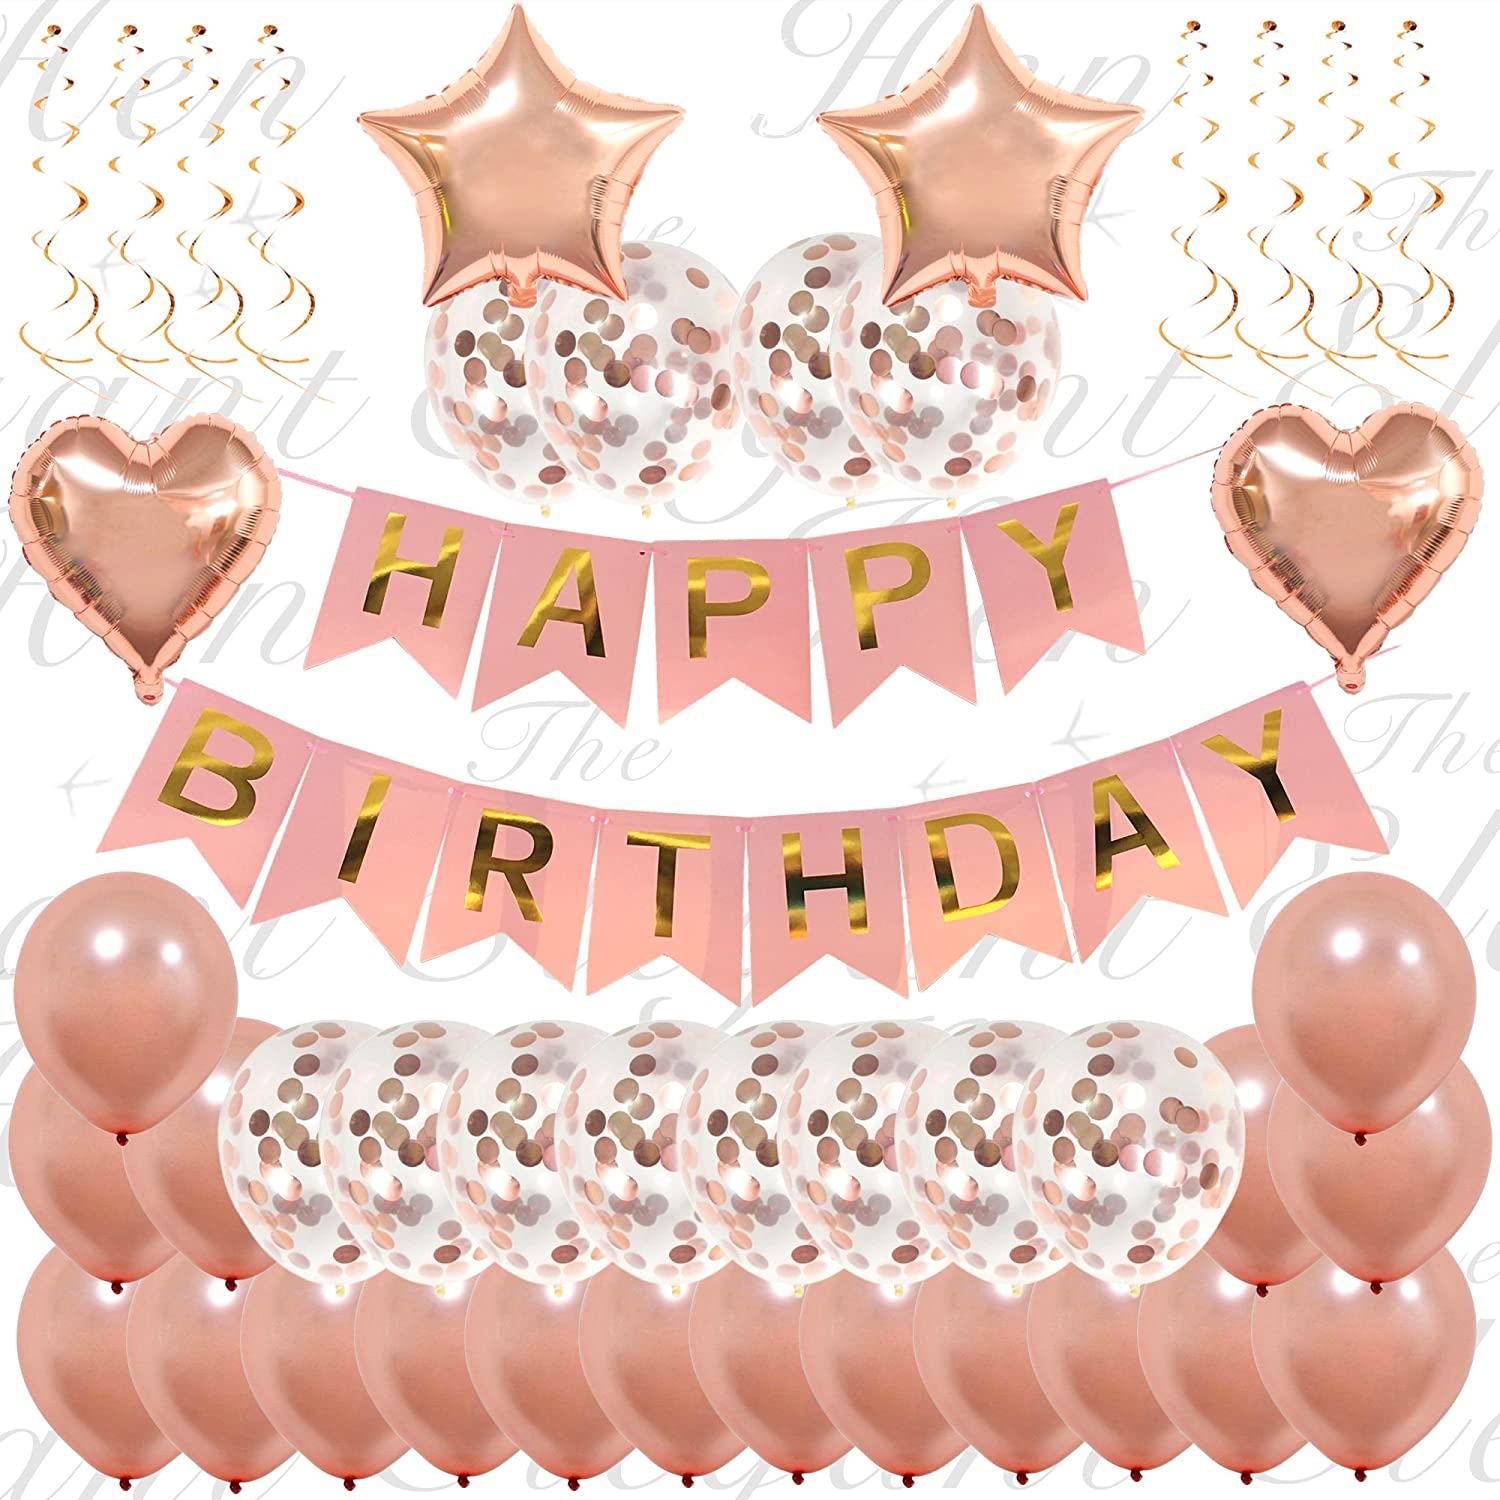 45 Piece Ultimate Rose Gold Happy Birthday Decorations | Classy Happy Birthday Confetti Balloon Banner Set For Girls and Women | Inflatable Foil Heart and Bunting Party Supplies | Includes Inflating Straw and Hanging Strings | 16th 18th 21st 25th 30th 50t